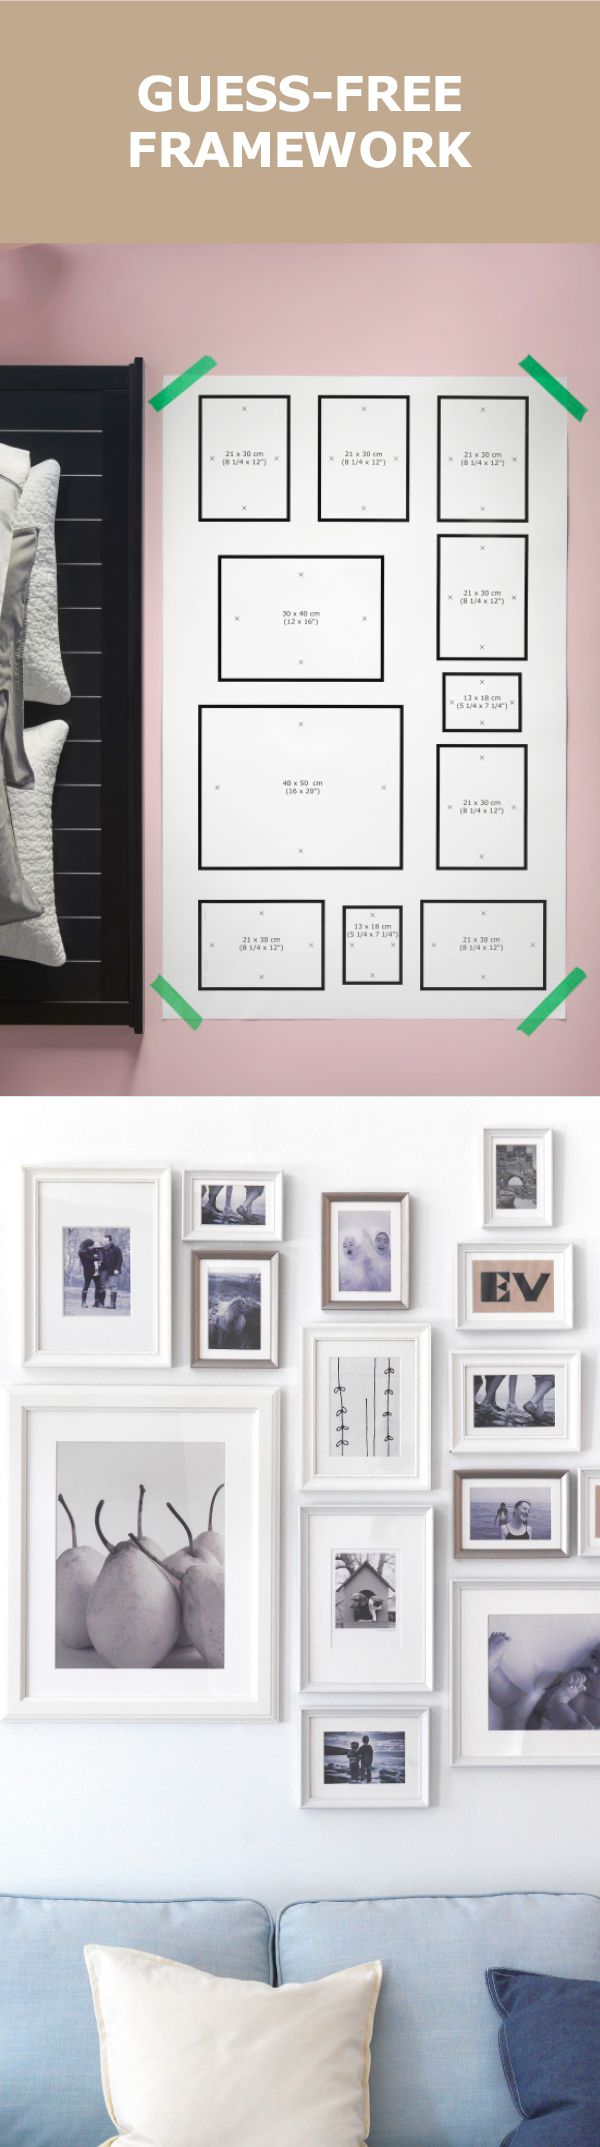 Best 25 photo wall hanging ideas on pinterest wall hanging our mtteby wall hanging template makes decorating easy just tape the template of your choice amipublicfo Choice Image